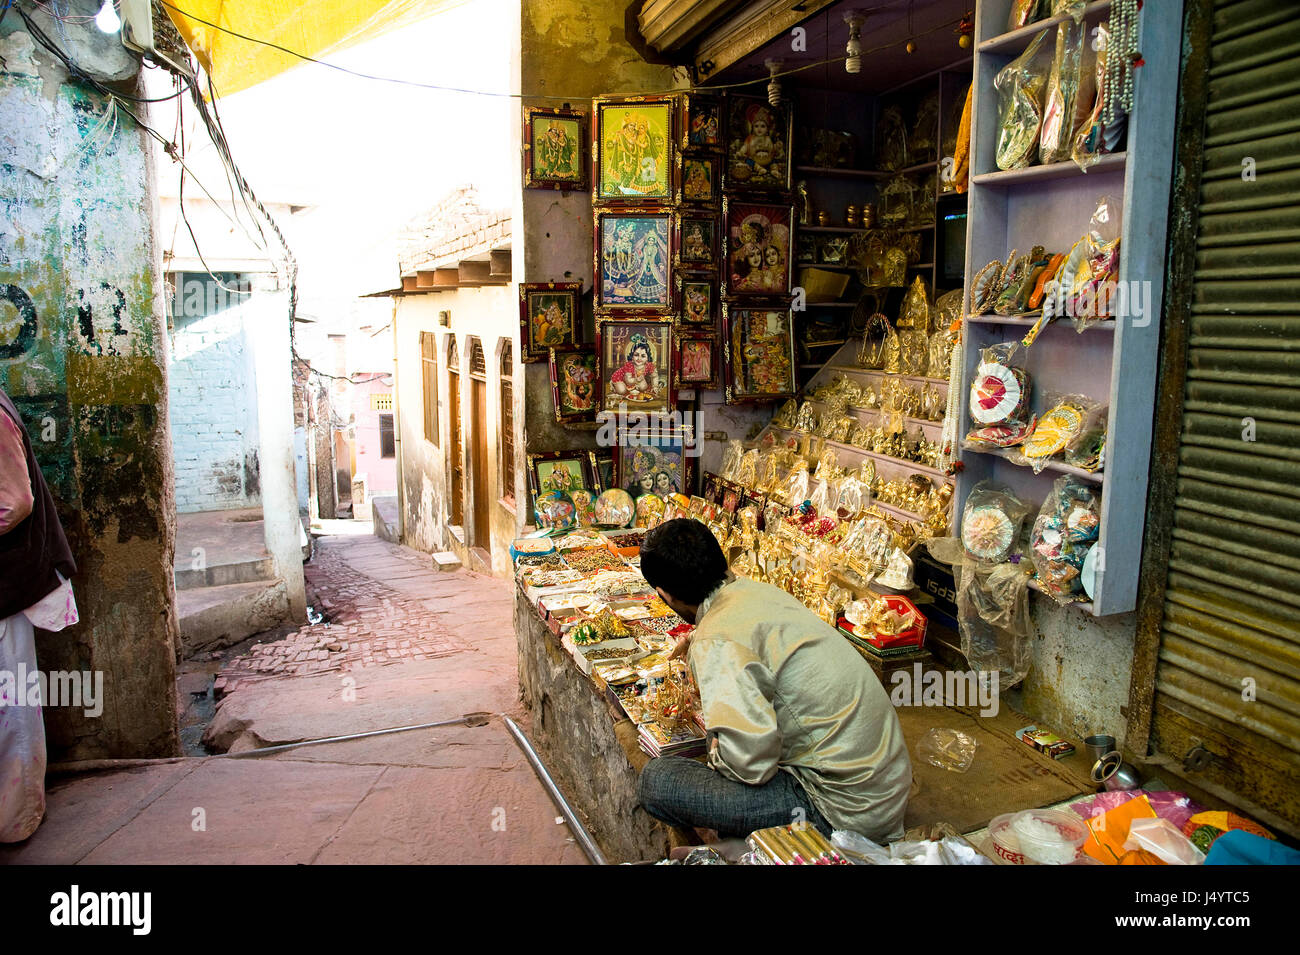 Man selling idol of gods, mathura , uttar pradesh, india, asia - Stock Image